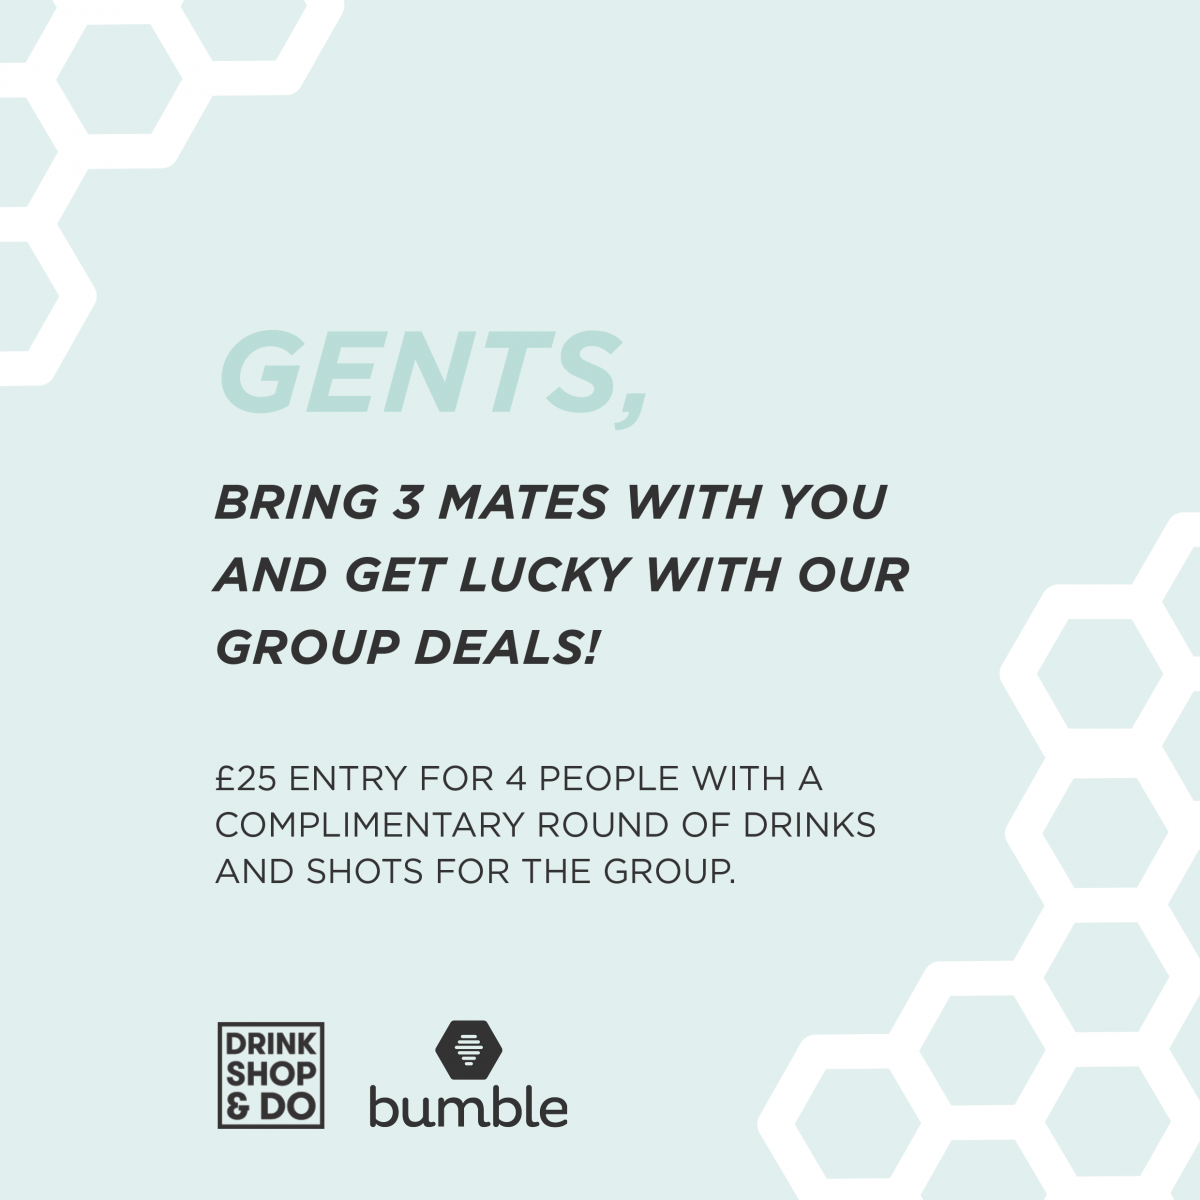 Bumble Presents: Drink, Date & Do